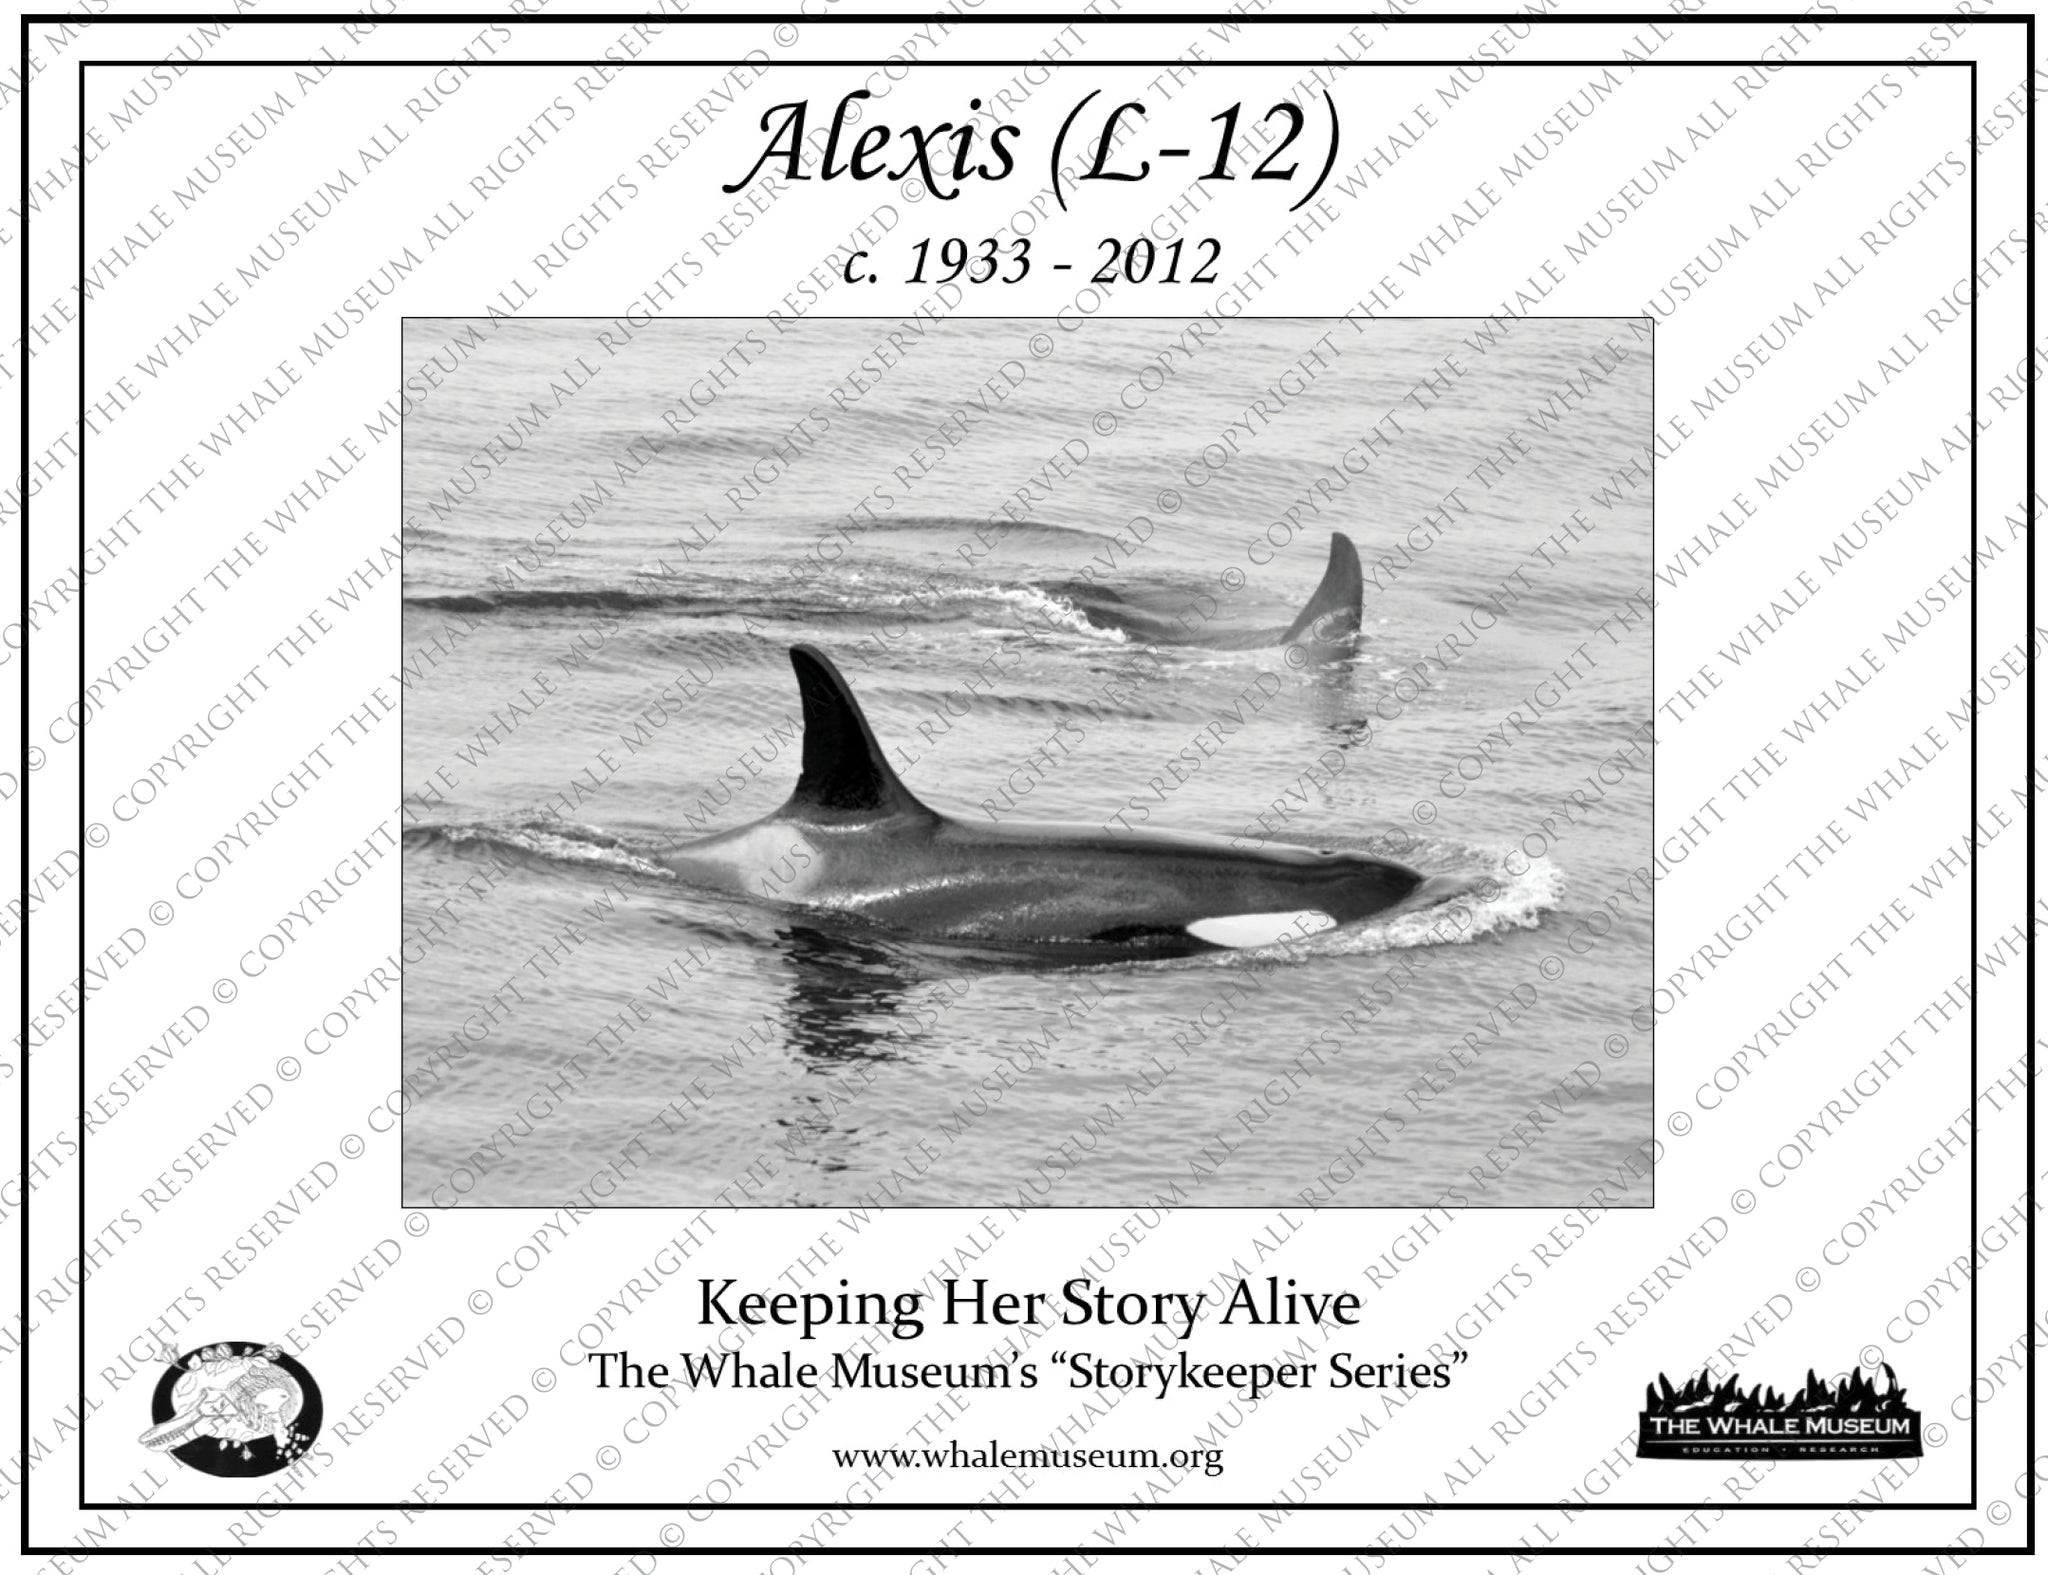 Alexis (L-12) Storykeeper